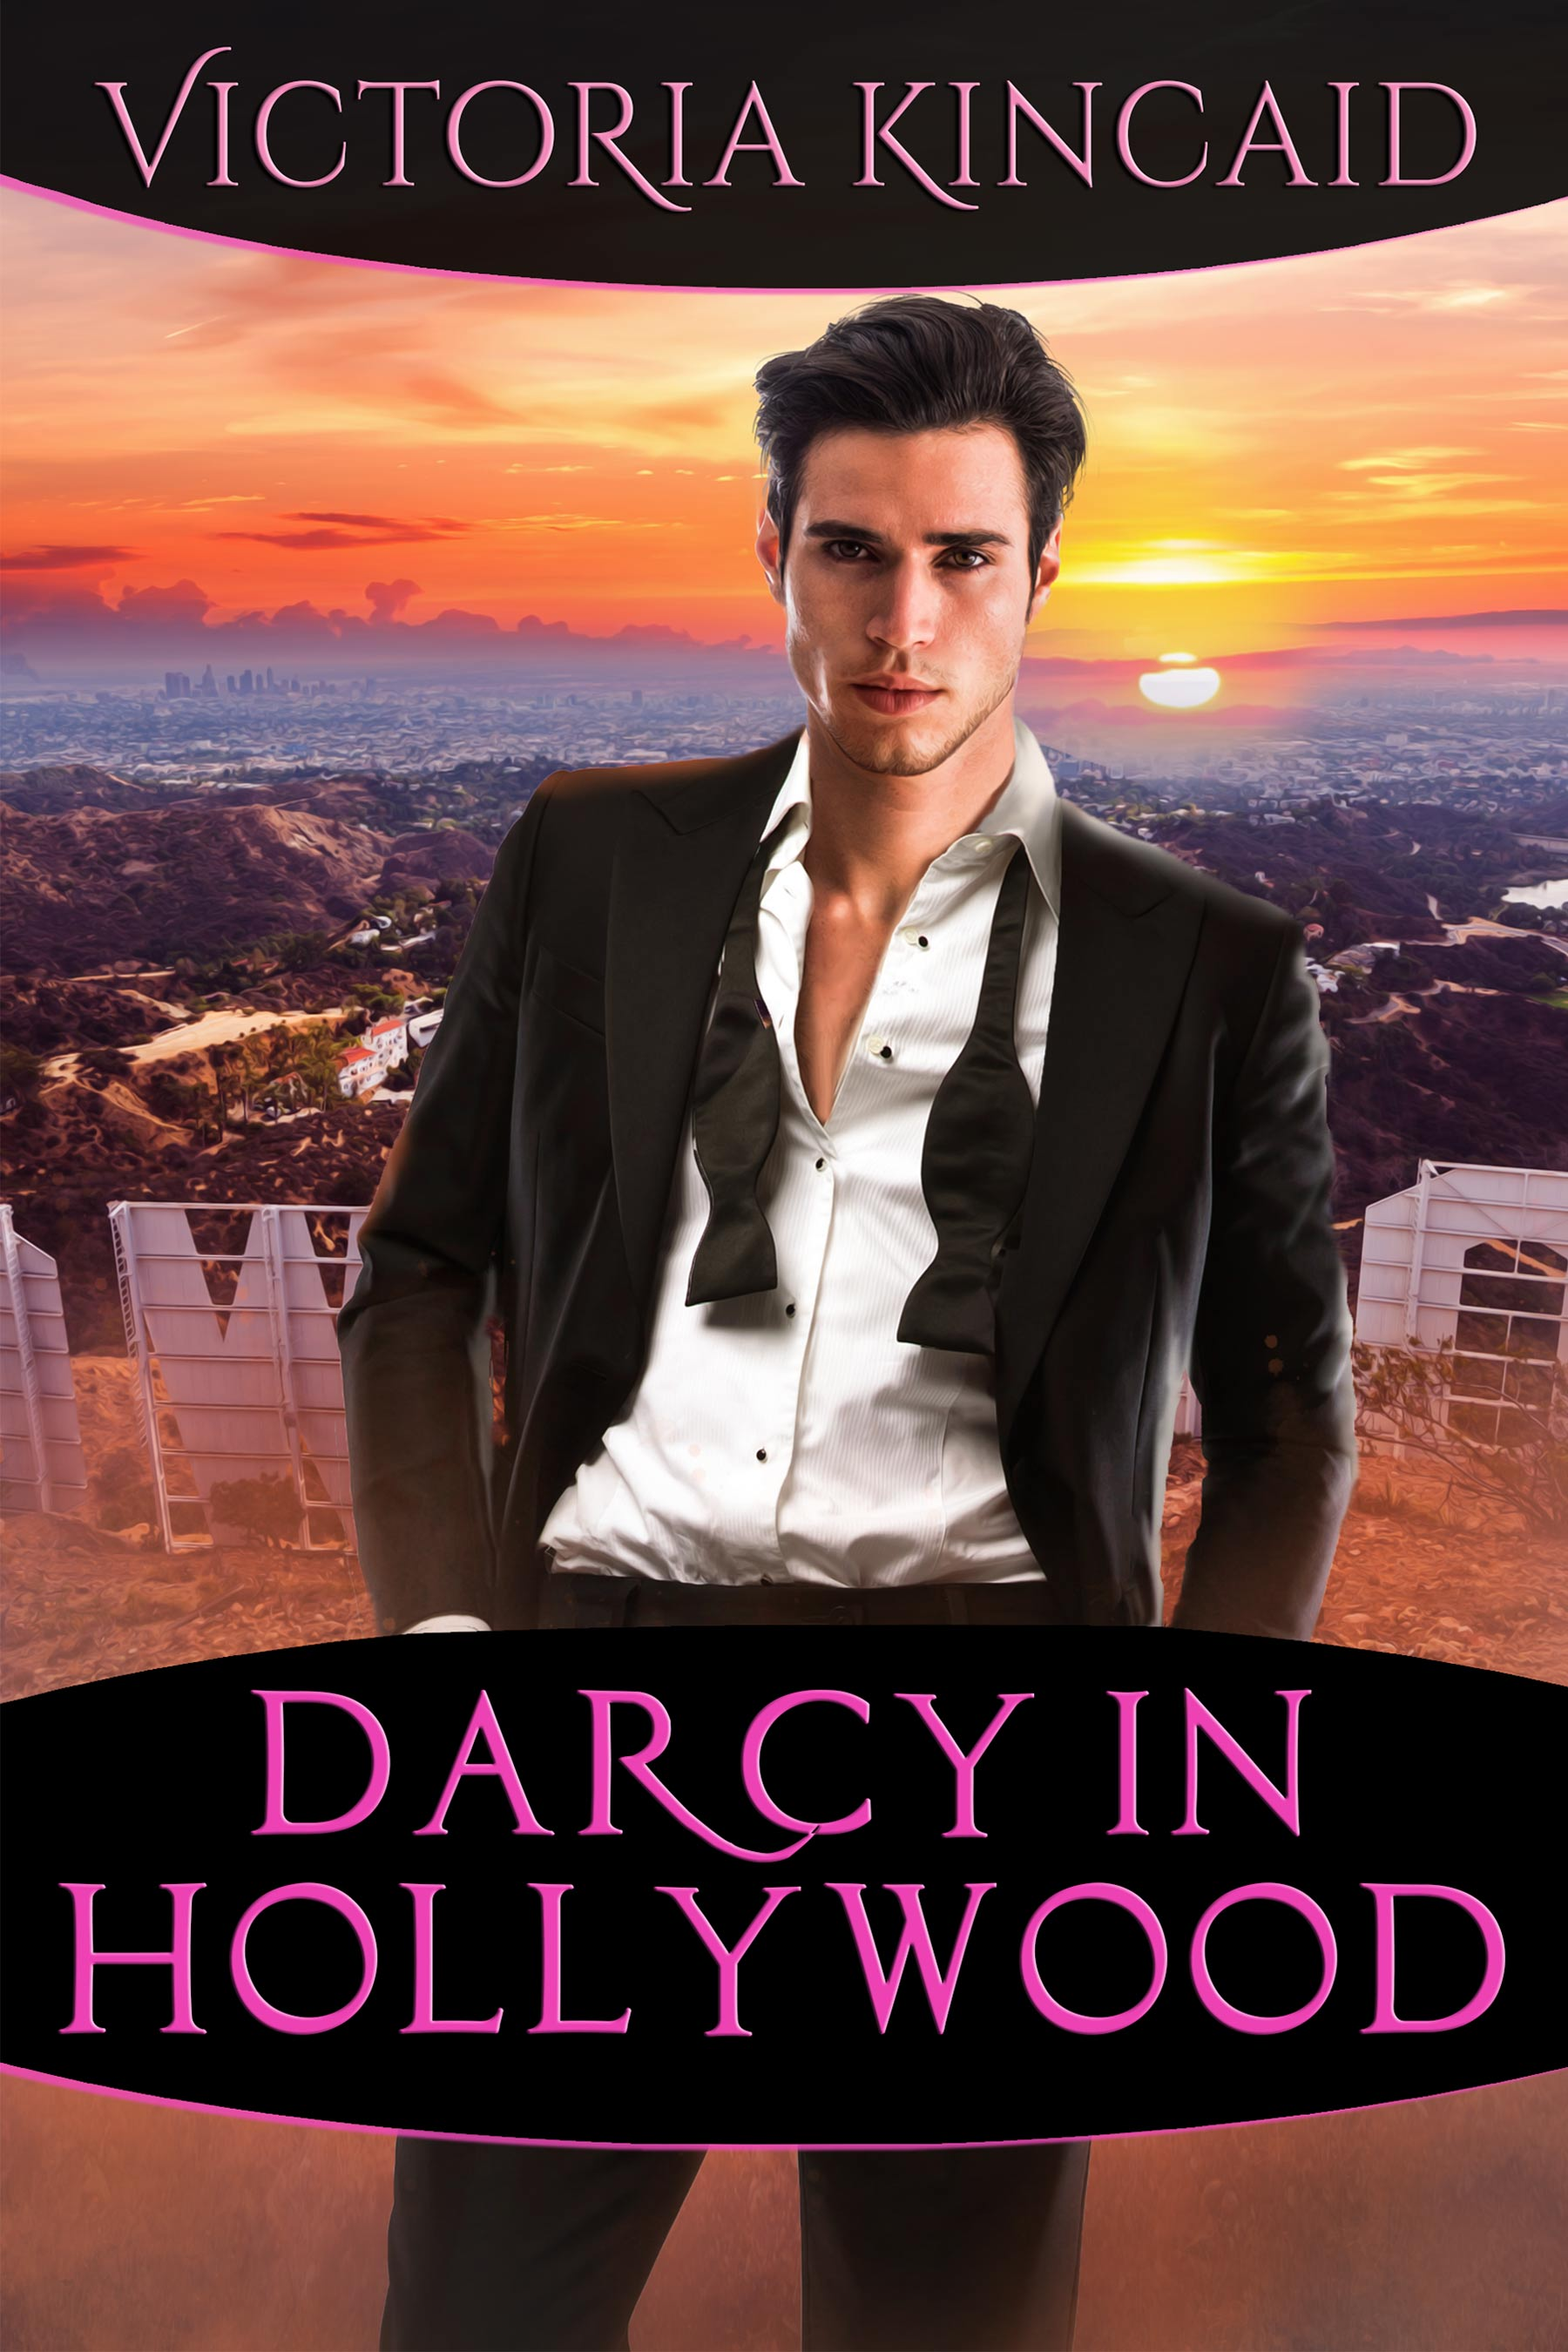 Darcy in Hollywood by Victoria Kincaid